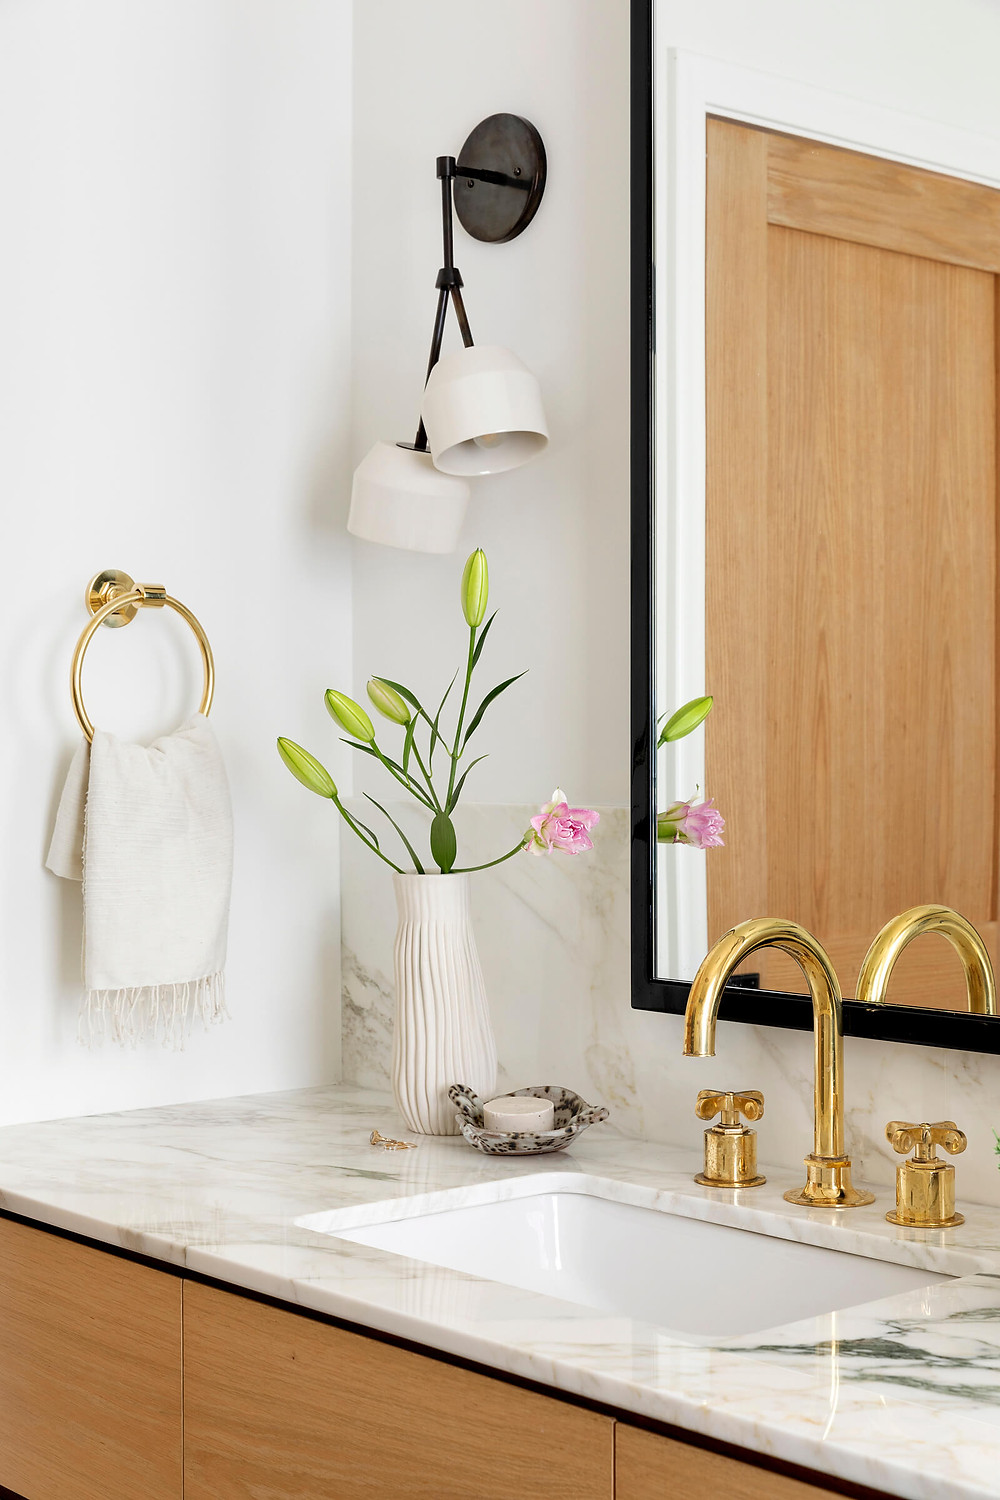 Modern bathroom white oak vanity with burnished brass Waterworks plumbing fixtures, marble countertop with extra tall backsplash and asymmetrical sconces